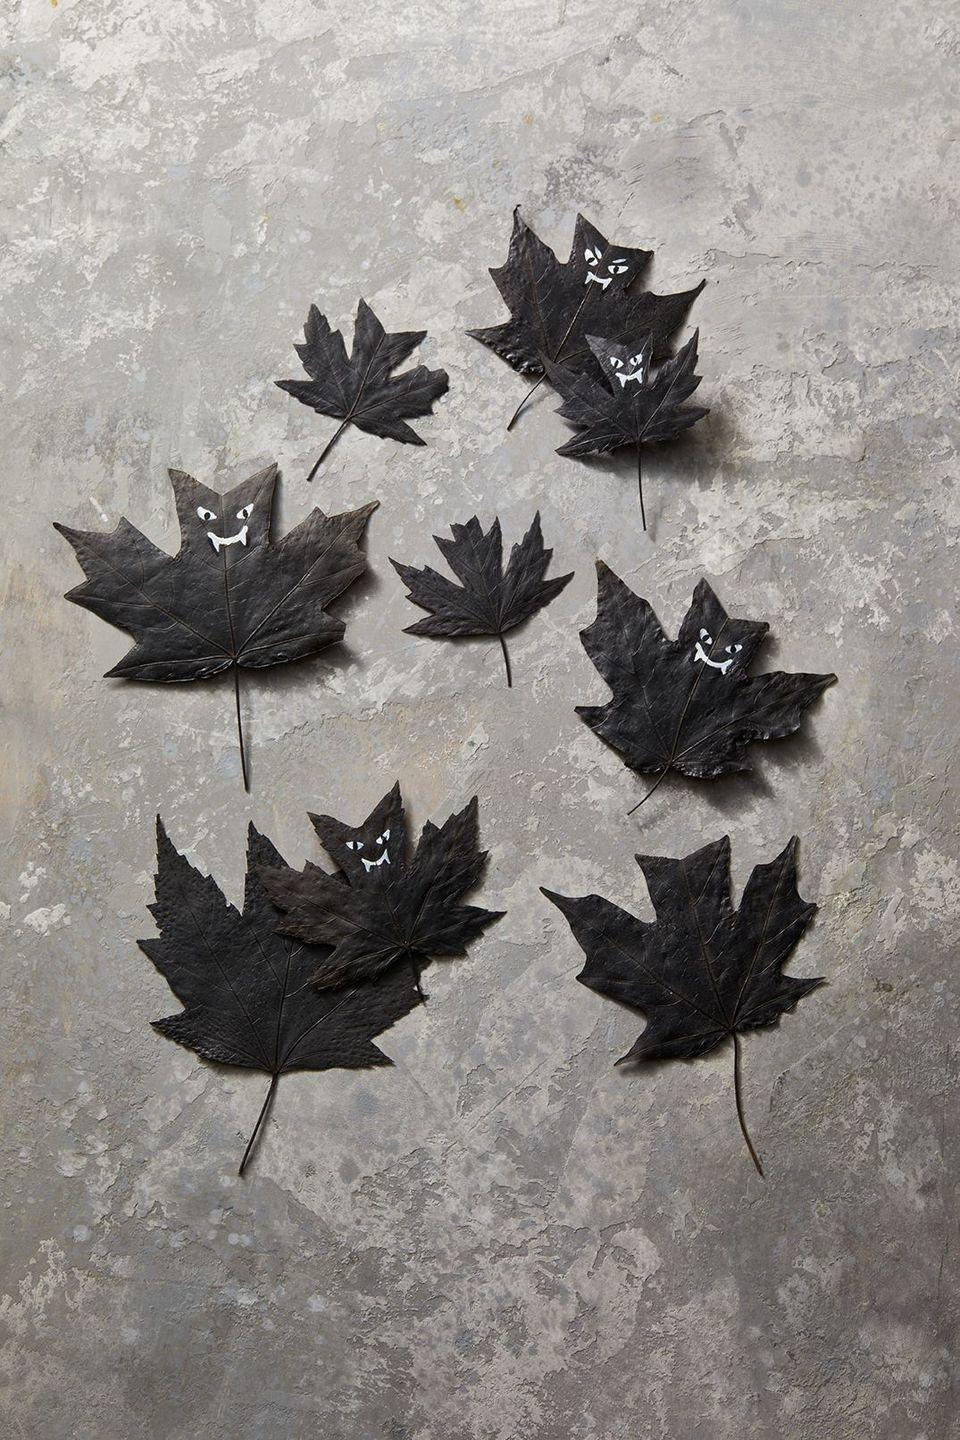 """<p>A great one for the kids to try! All you have to do is gather some leaves, spray them with matte black paint and use a white marker to draw on little faces.</p><p><a class=""""link rapid-noclick-resp"""" href=""""https://www.amazon.com/Krylon-K02754007-Fusion-Spray-Paint/dp/B07LFWTQJX/?tag=syn-yahoo-20&ascsubtag=%5Bartid%7C10055.g.421%5Bsrc%7Cyahoo-us"""" rel=""""nofollow noopener"""" target=""""_blank"""" data-ylk=""""slk:SHOP BLACK MATTE PAINT"""">SHOP BLACK MATTE PAINT</a></p>"""